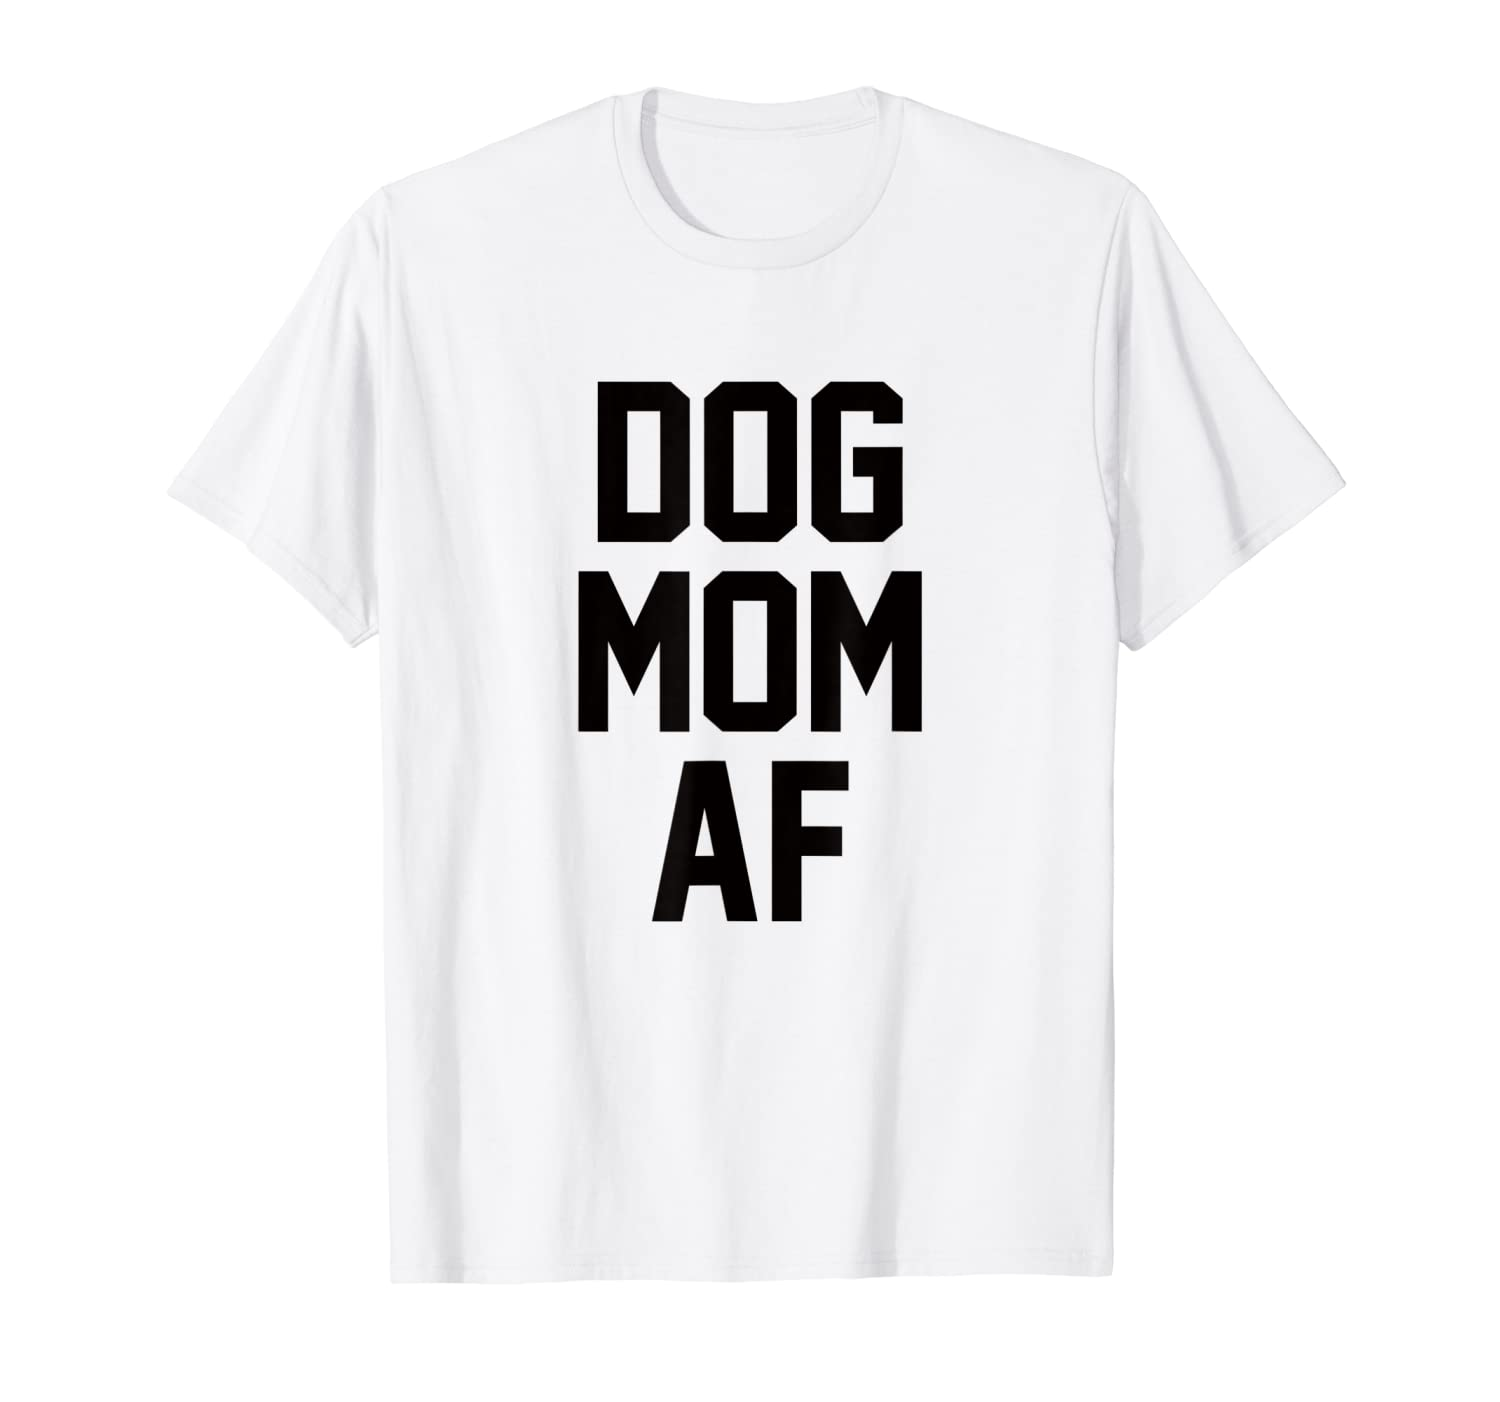 9fb3d4bf Amazon.com: Dog Mom AF T-Shirt for Dog Moms that Love Puppies: Clothing